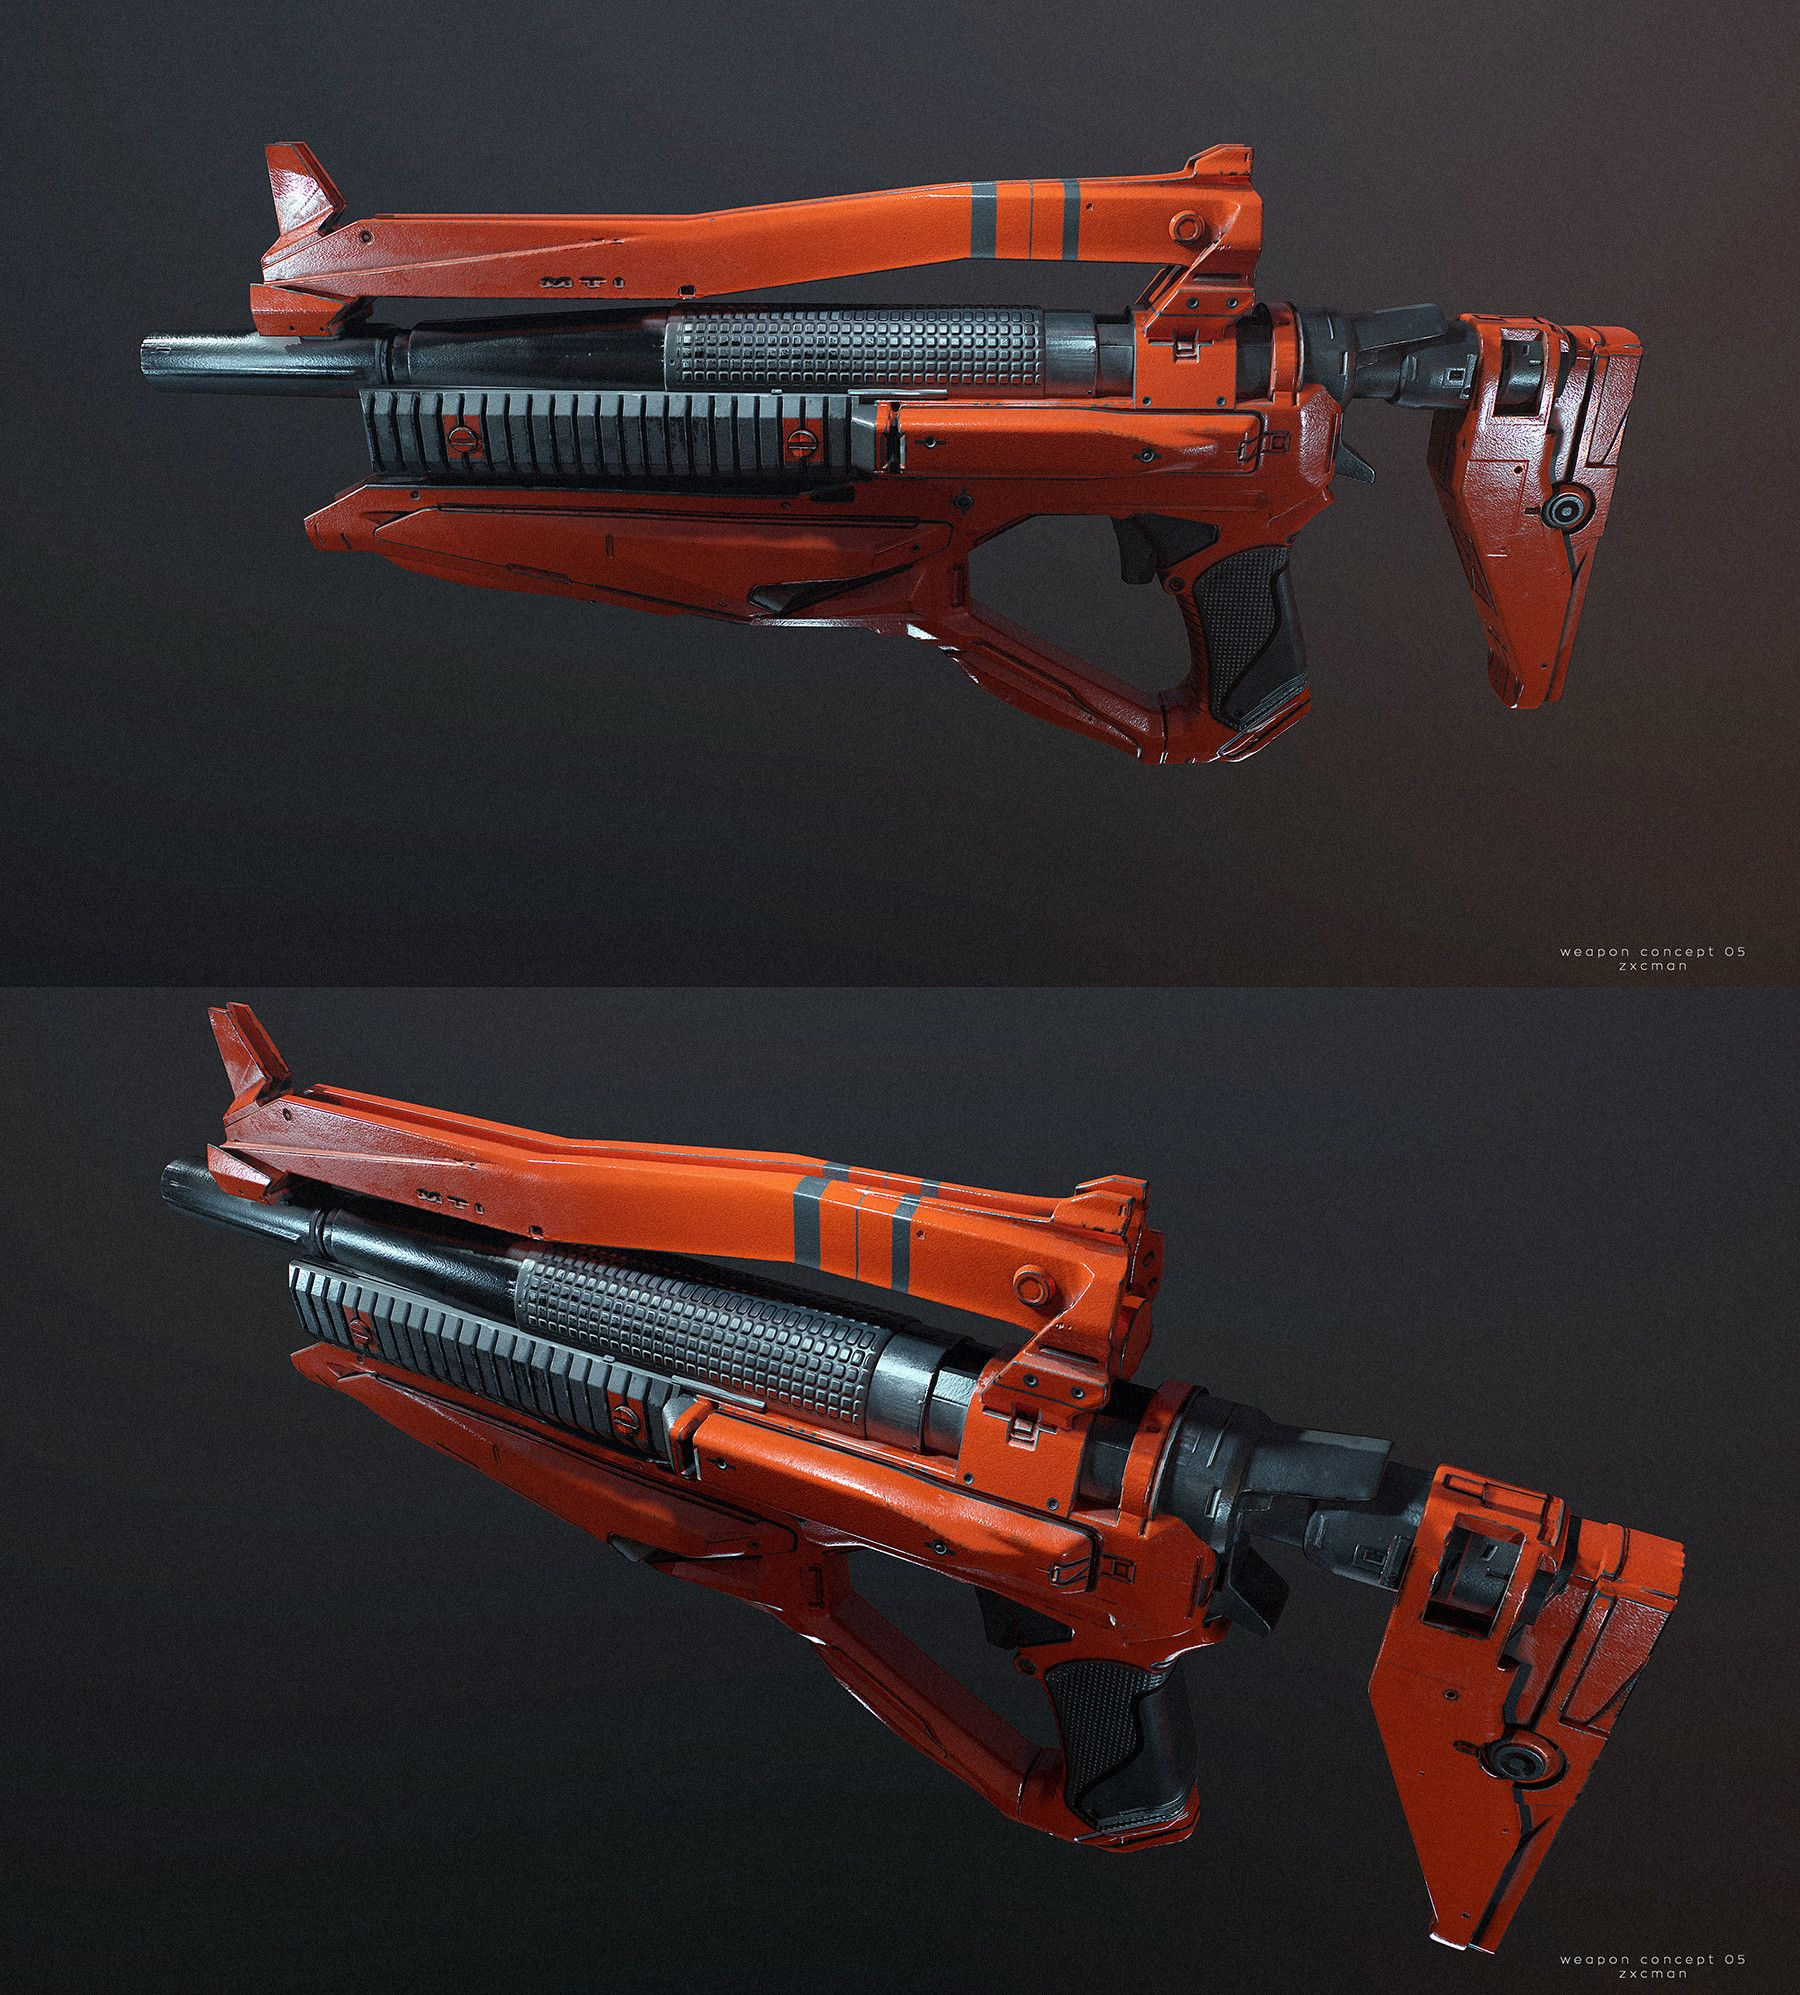 ArtStation - Weapon concepts , Dmitriy Rabochiy